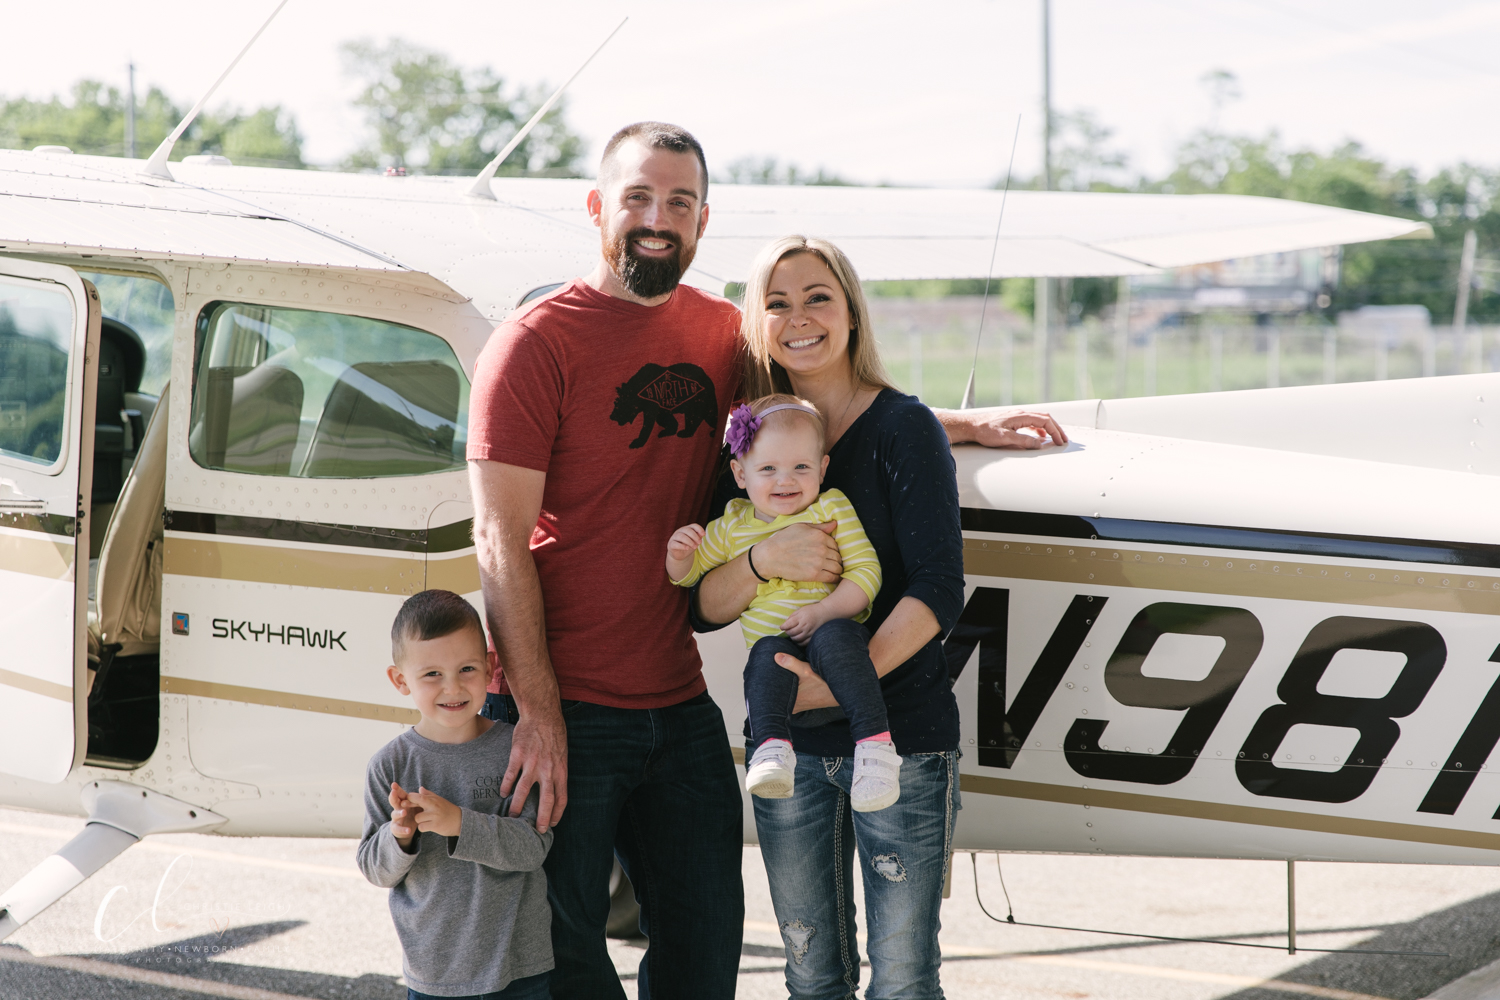 Aviation_Themed_Fourth_Birthday_at_Youngstown_Airport_Hanger_Vienna_OH_by_Child_and_Family_Photographer_Christie_Leigh_Photo-23.JPG